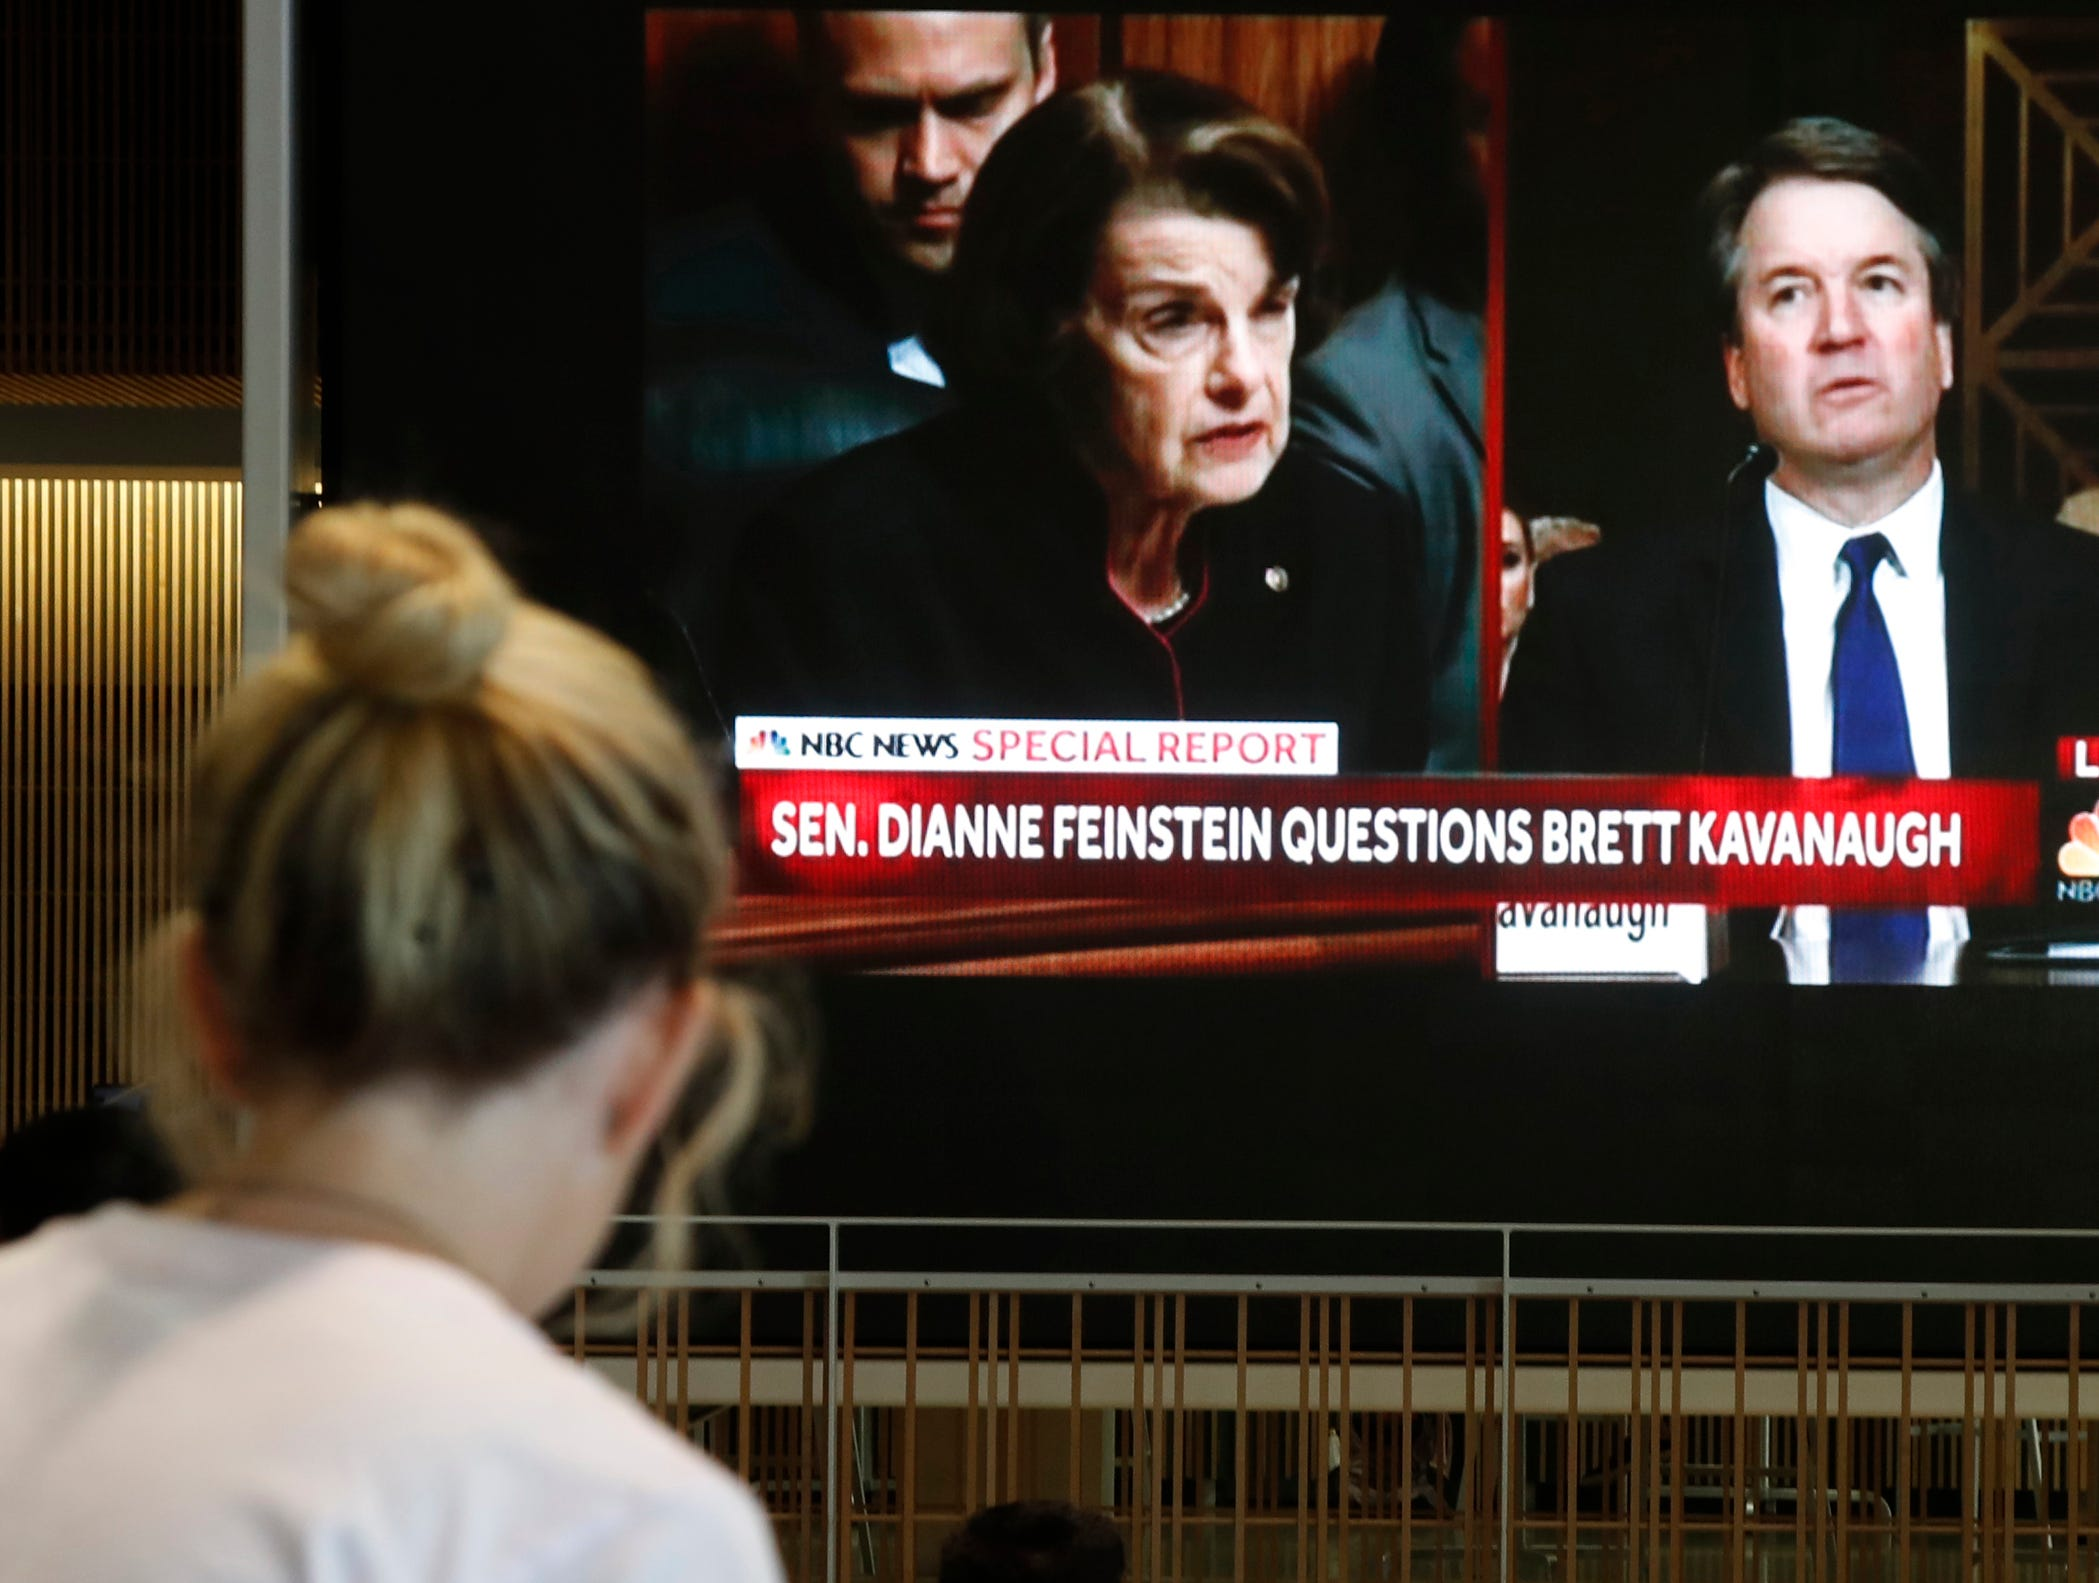 A student watches as Brett Kavanaugh is questioned by US Senator Dianne Feinstein at the Senate Judiciary Committee hearing on the nomination of Brett Kavanaugh to be an associate justice of the Supreme Court.